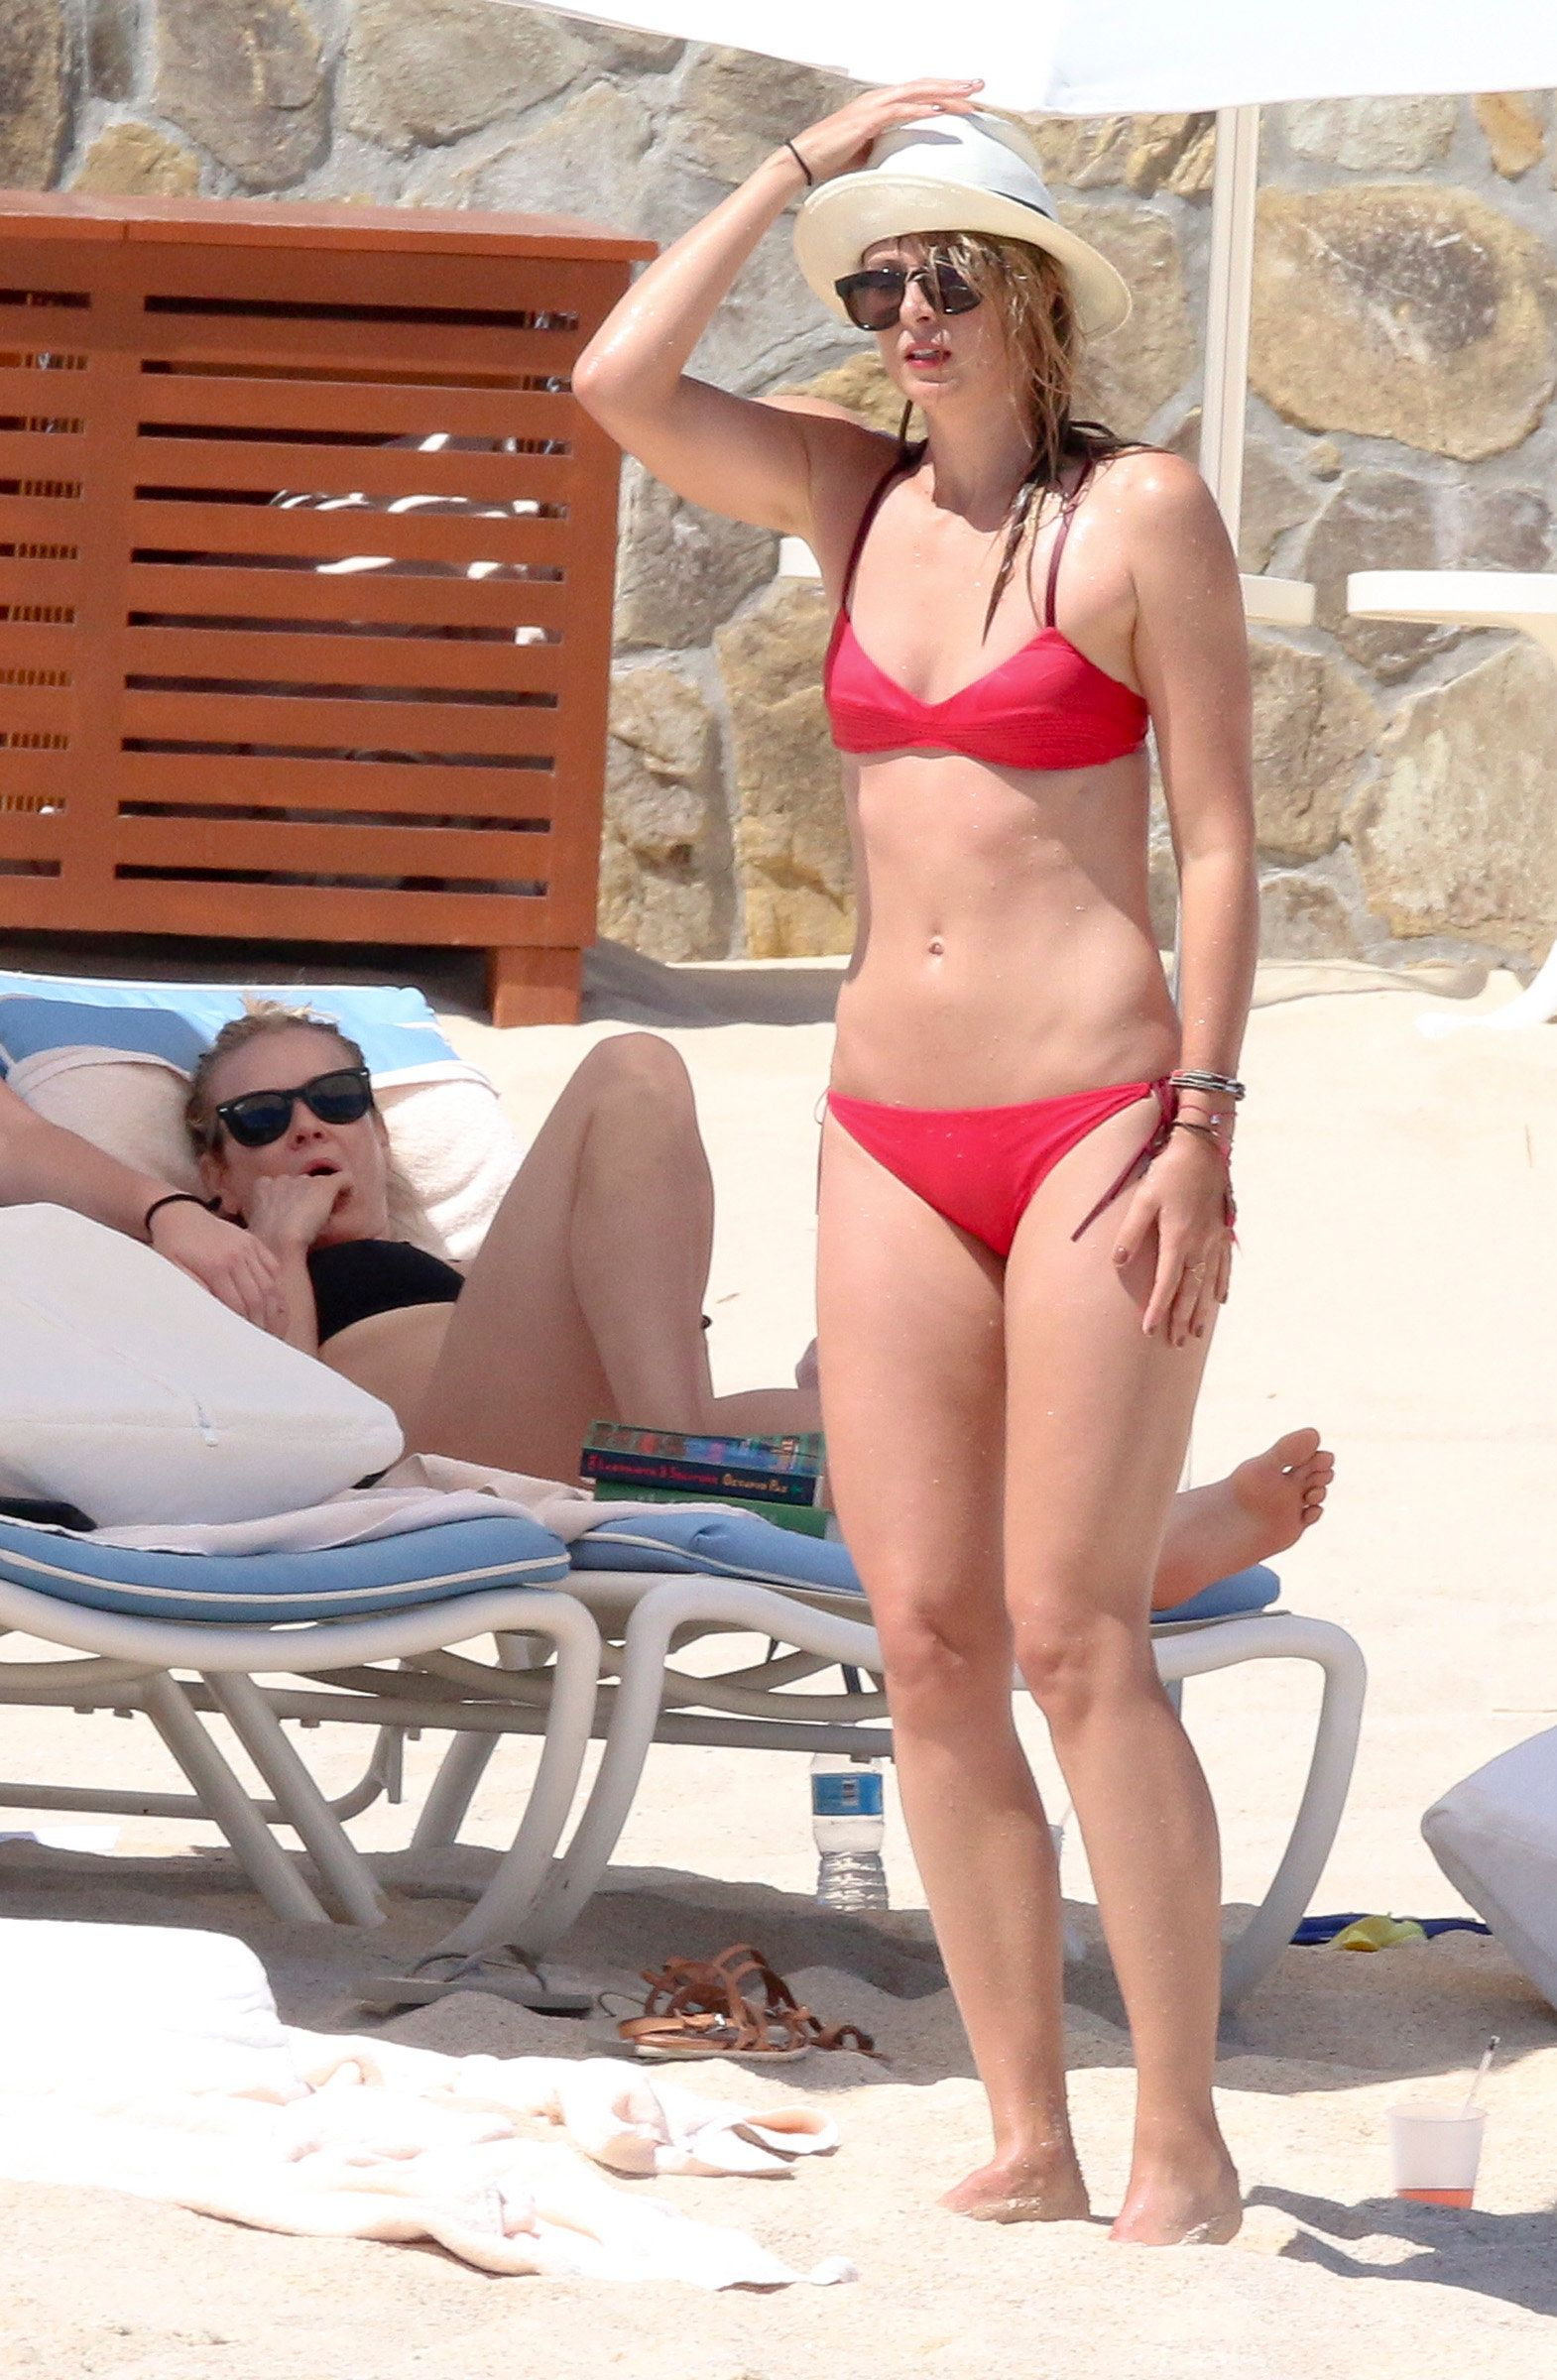 EXCLUSIVE:  Maria Sharapova and Chelsea Handler soak up the sun on the beaches of Mexico. The friends, who showed off their slender frames in bikinis, sunbathed on the sand and took a dip in the ocean during their Easter holiday on March 26, 2016. Their vacation came just three weeks after tennis star Sharapova revealed she had failed a drugs test at the 2016 Australian Open and admitted to testing positive for meldonium.  NOTE **PHOTOS MARCH 26,2016  <P> Pictured: Chelsea Handler, maria sharapova <B>Ref: SPL1252993  280316   EXCLUSIVE</B><BR/> Picture by: Clasos.com.mx<BR/> </P><P> <B>Splash News and Pictures</B><BR/> Los Angeles:310-821-2666<BR/> New York:212-619-2666<BR/> London:870-934-2666<BR/> photodesk@splashnews.com<BR/> </P>